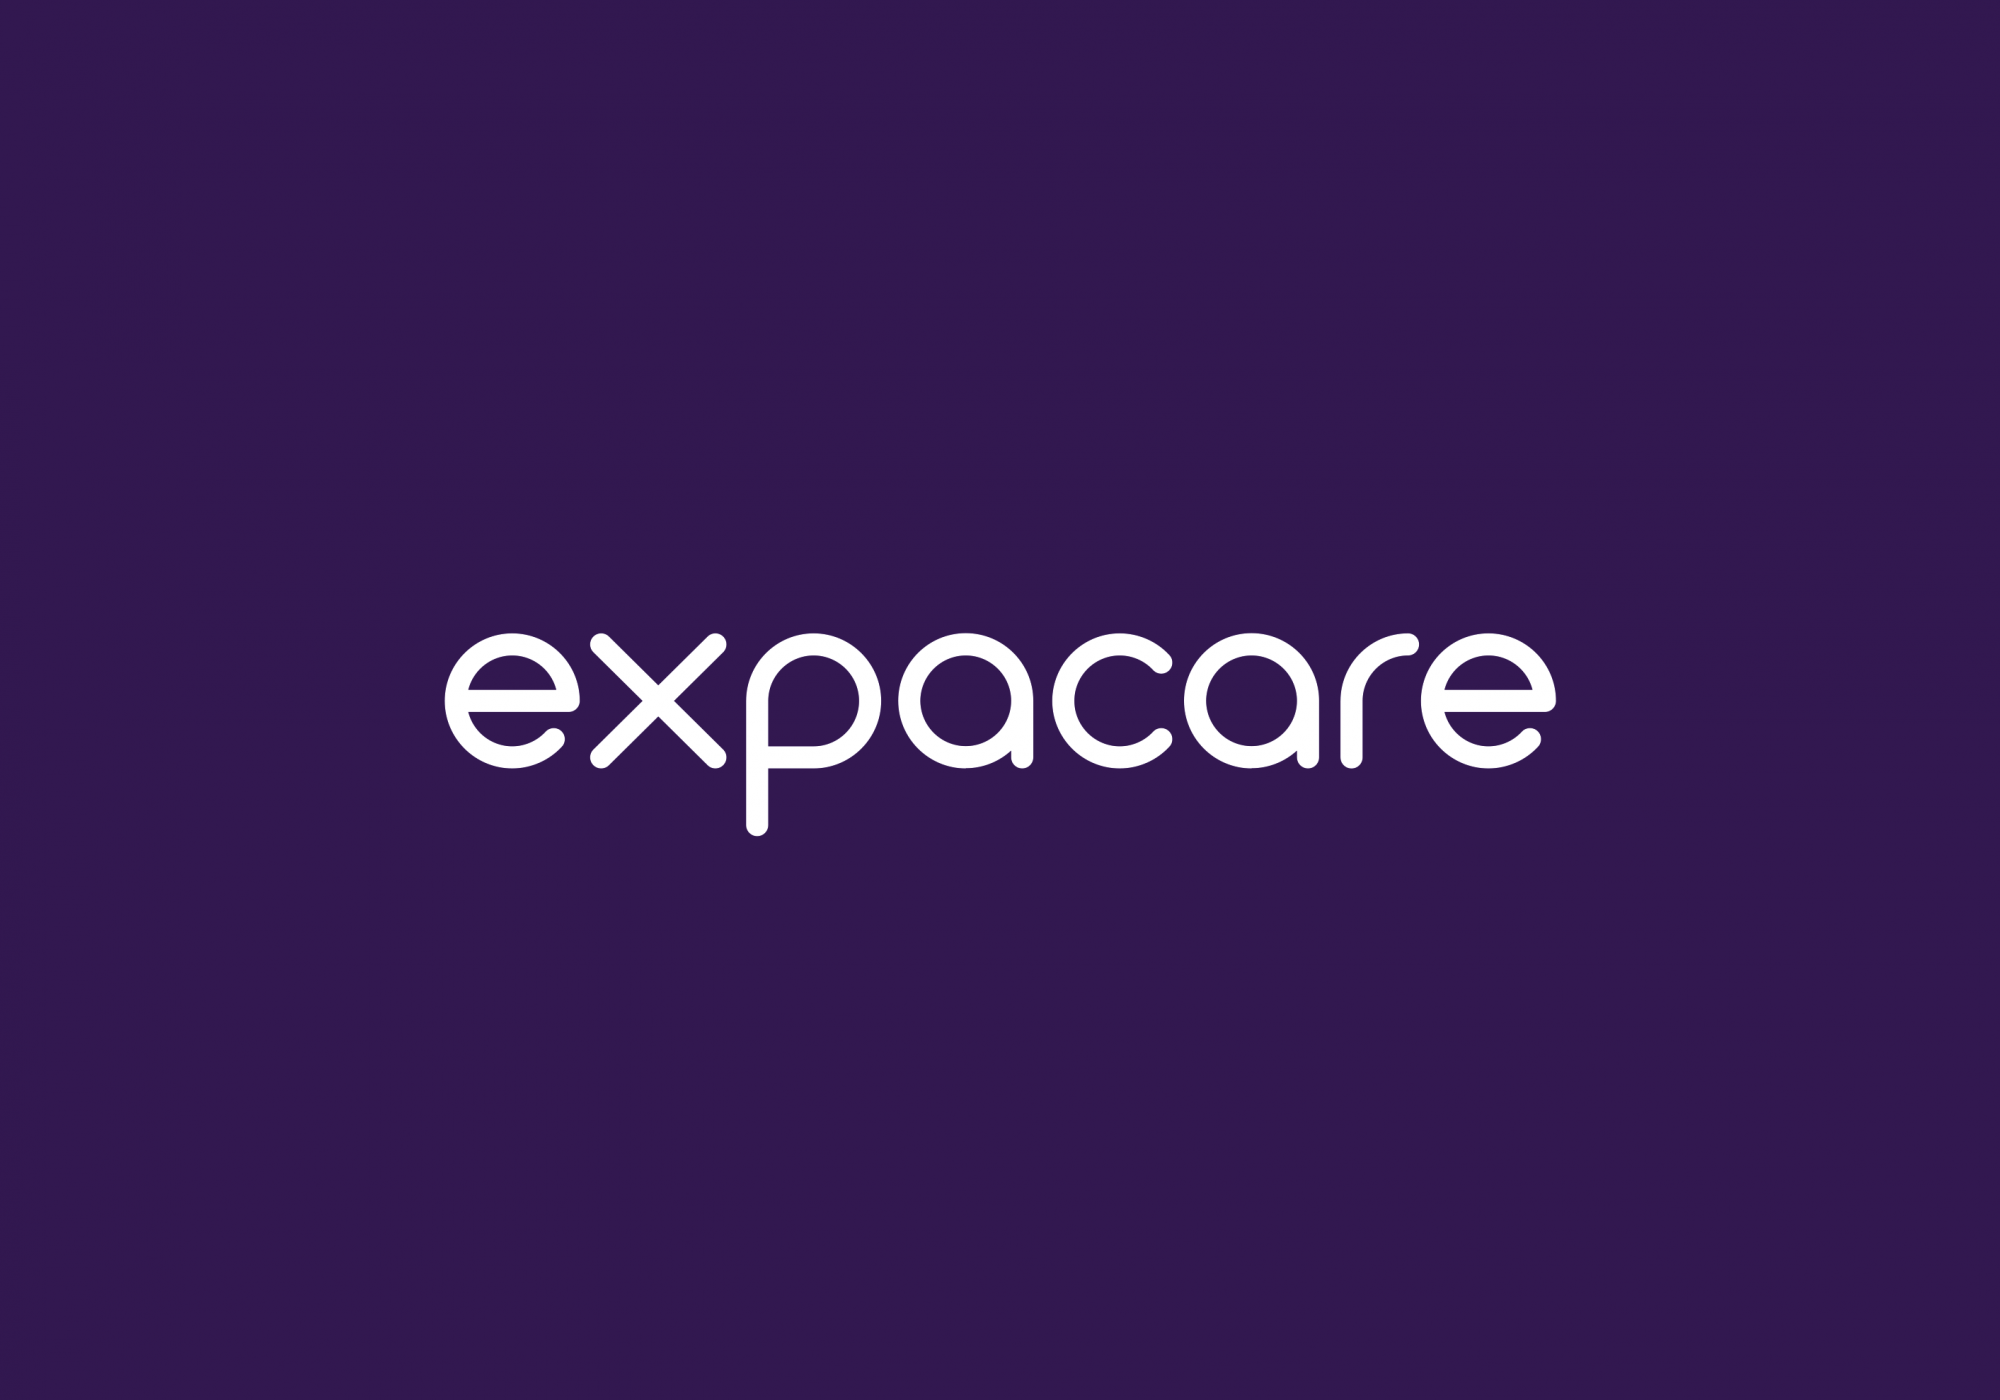 Expacare - Web Design, Branding & Marketing Material In Shropshire